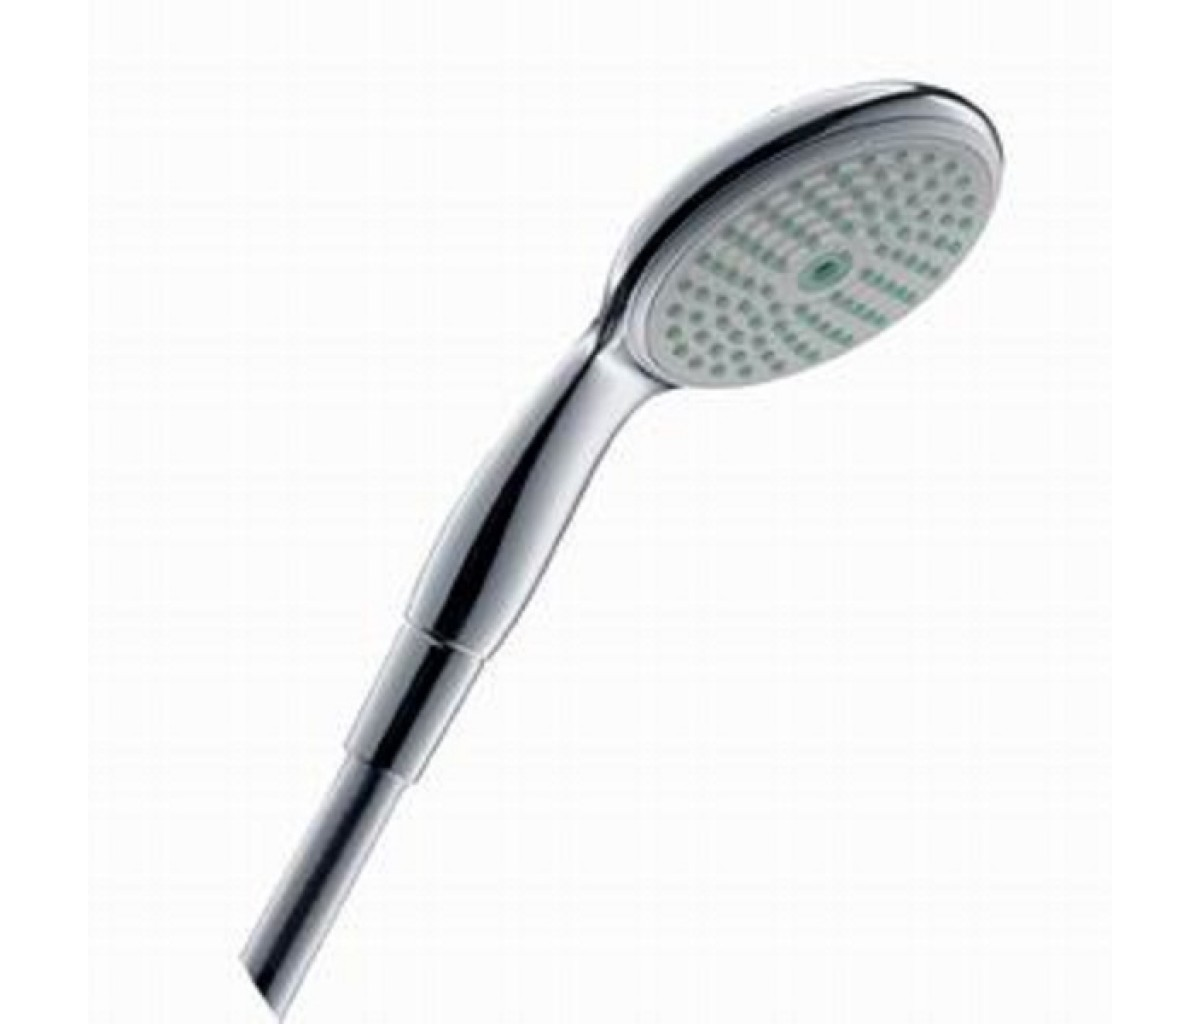 Ручна лійка HANSGROHE Raindance E 100 AIR (28508000)